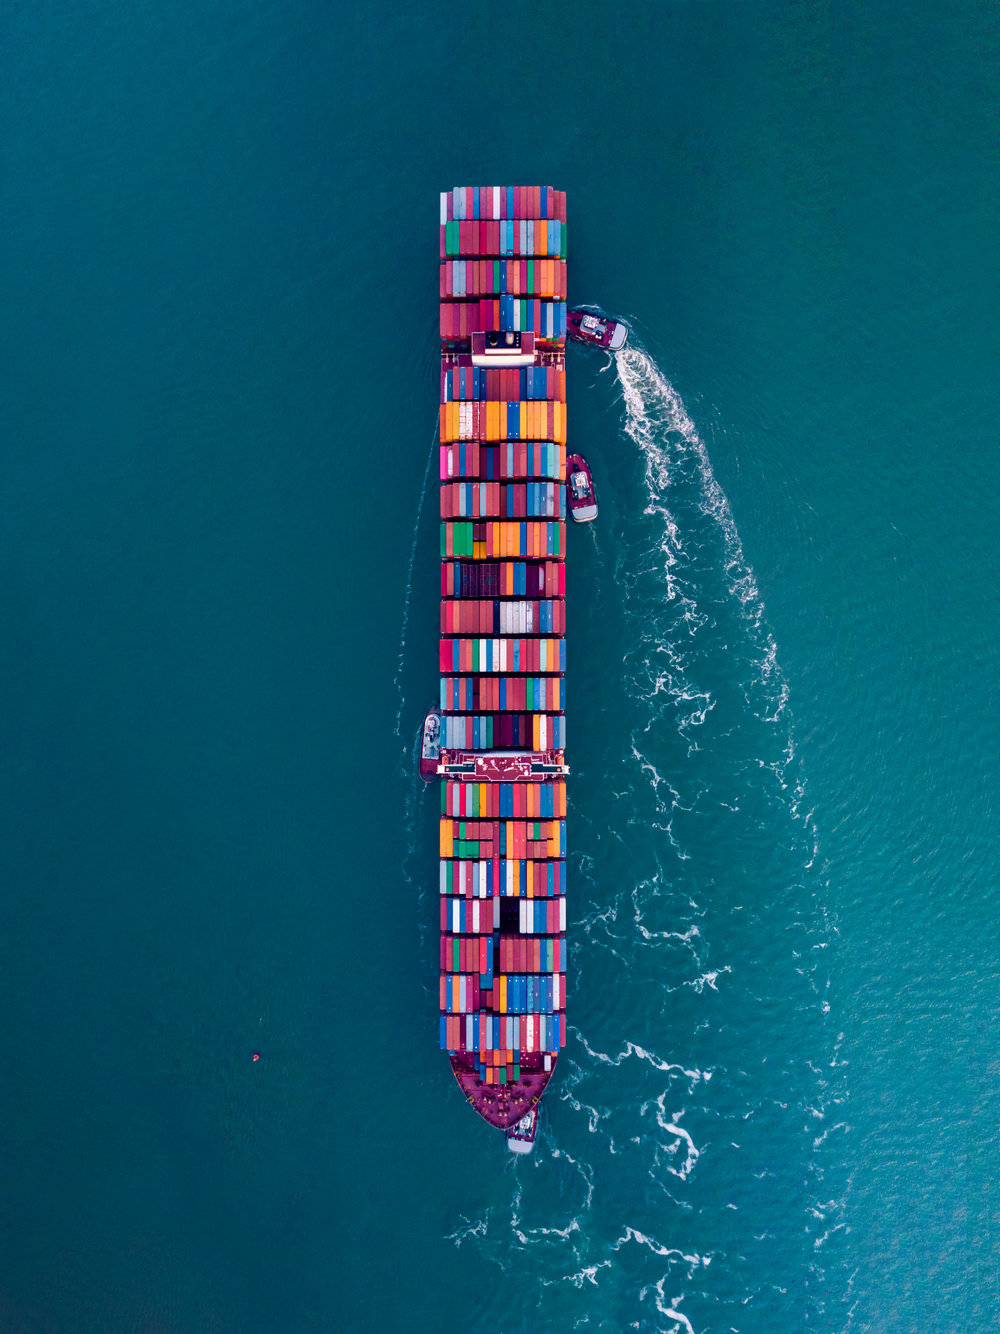 ContainerShip_typoland_portrait.jpg